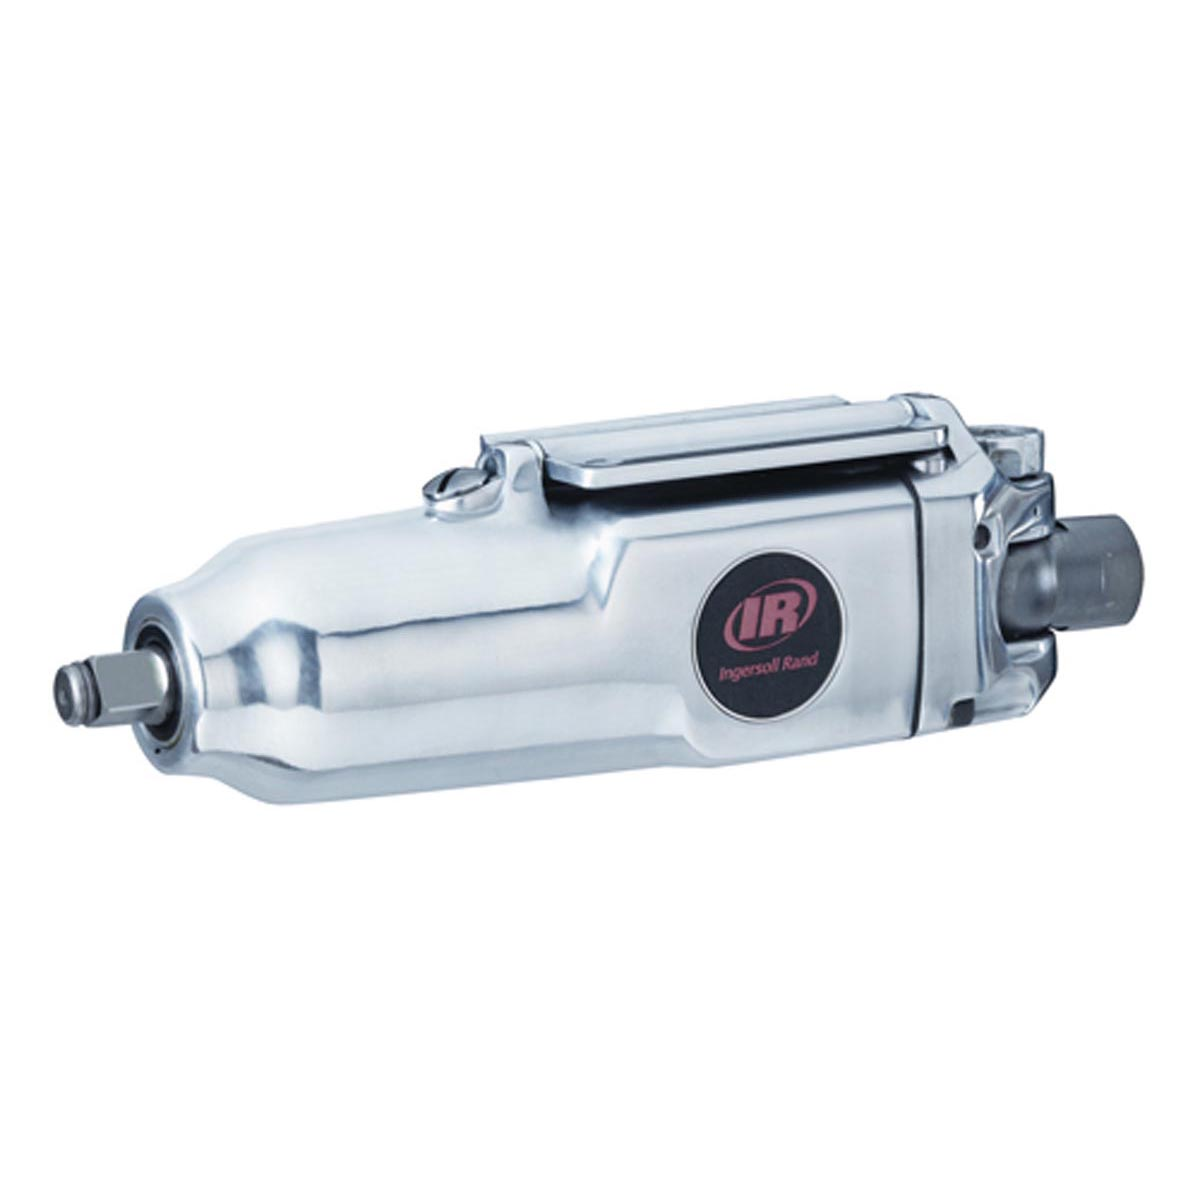 3/8-In Drive Butterfly Impact Wrench - 200 Ft-Lbs Max Torque